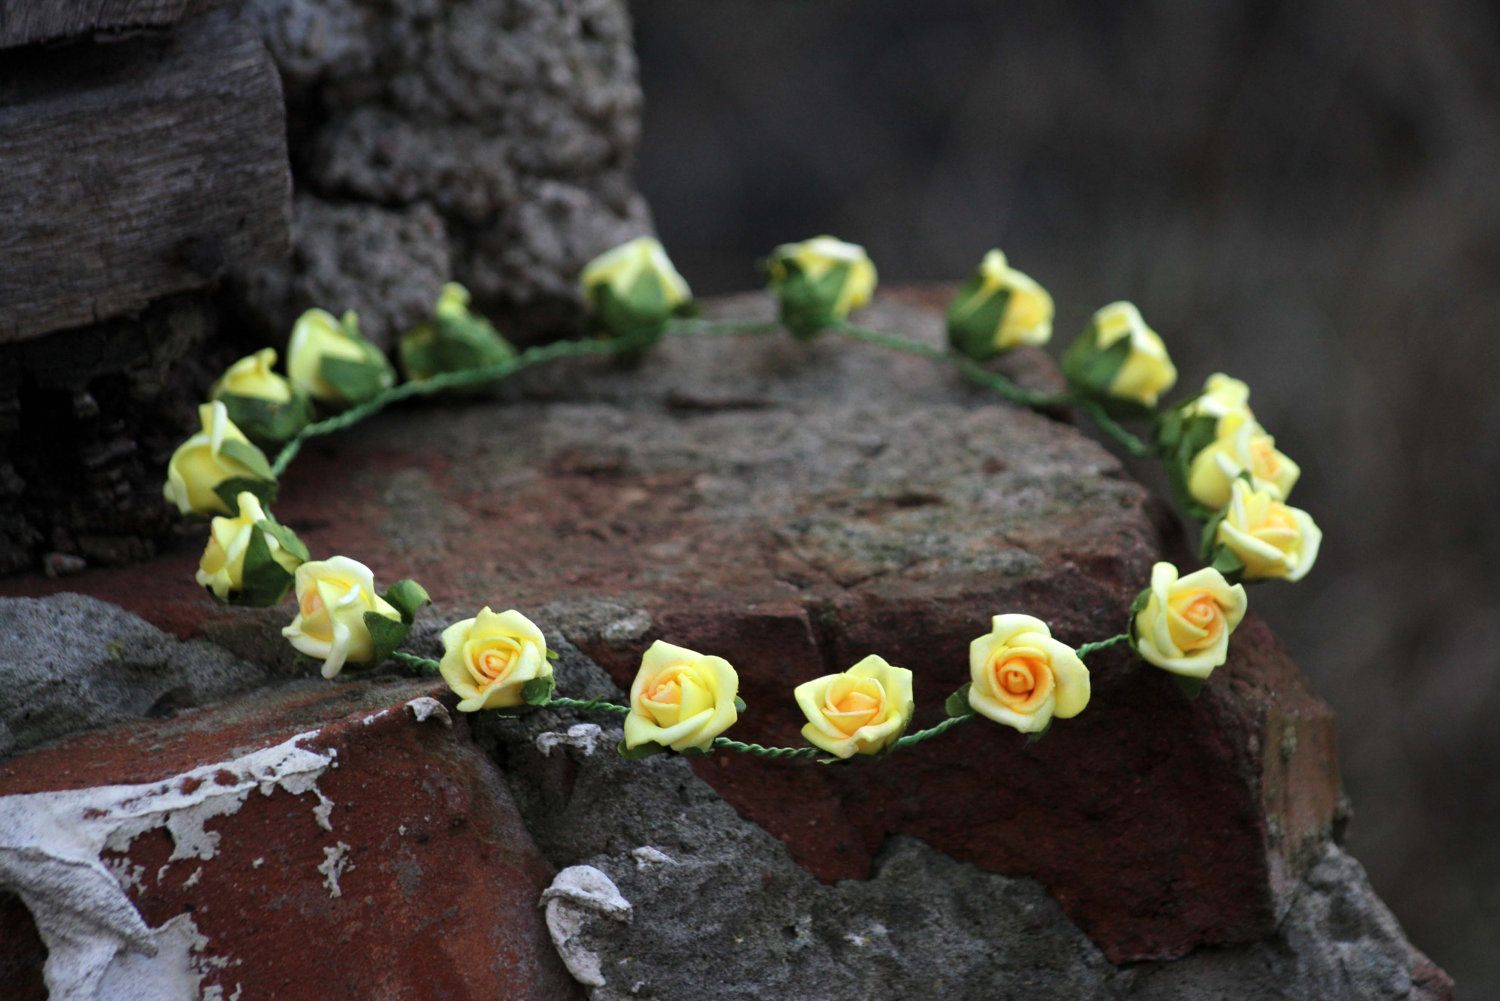 Secret garden fabulous romantic sunny yellow fairy rose crown headband, head piece. $42.00, via Etsy.